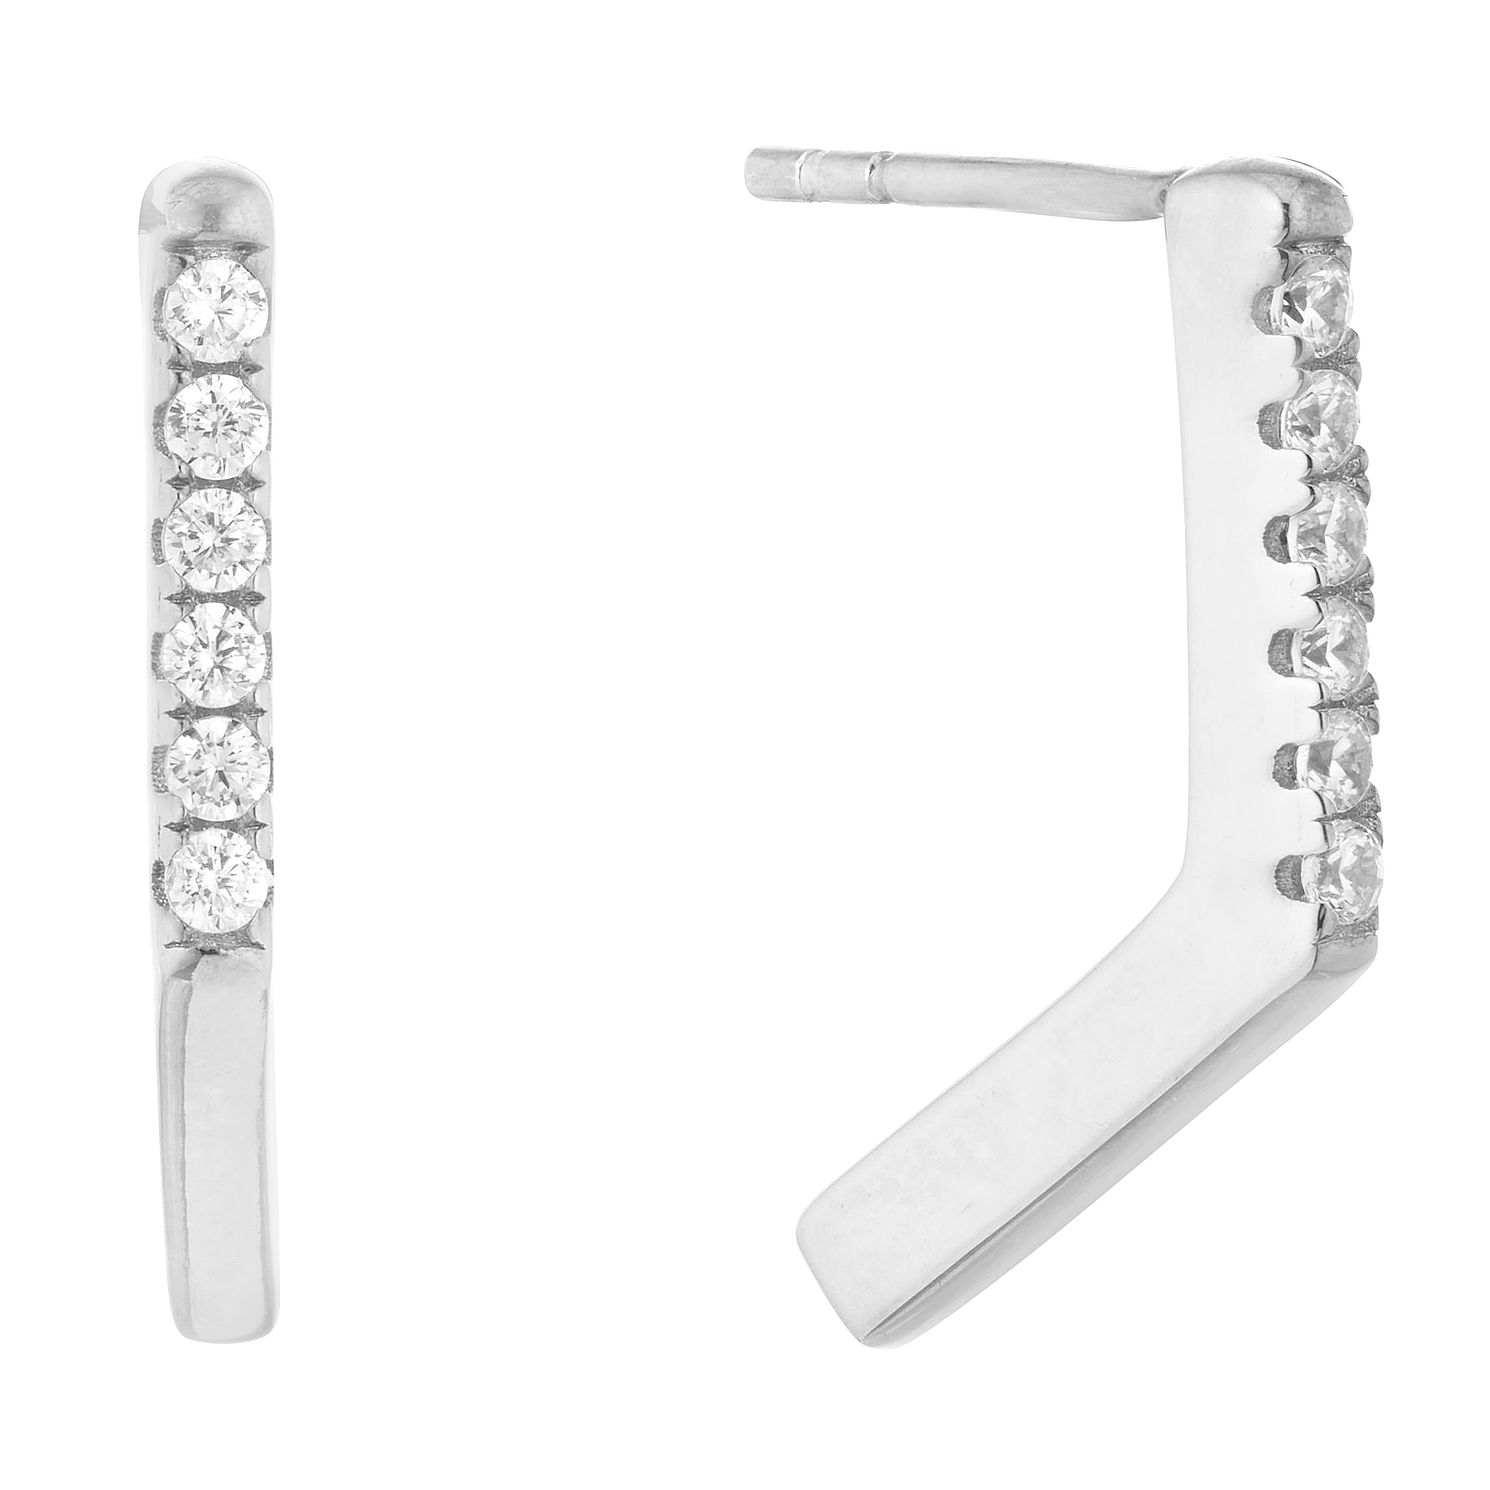 Silver Cubic Zirconia Chevron Stud Earrings - Product number 1058223